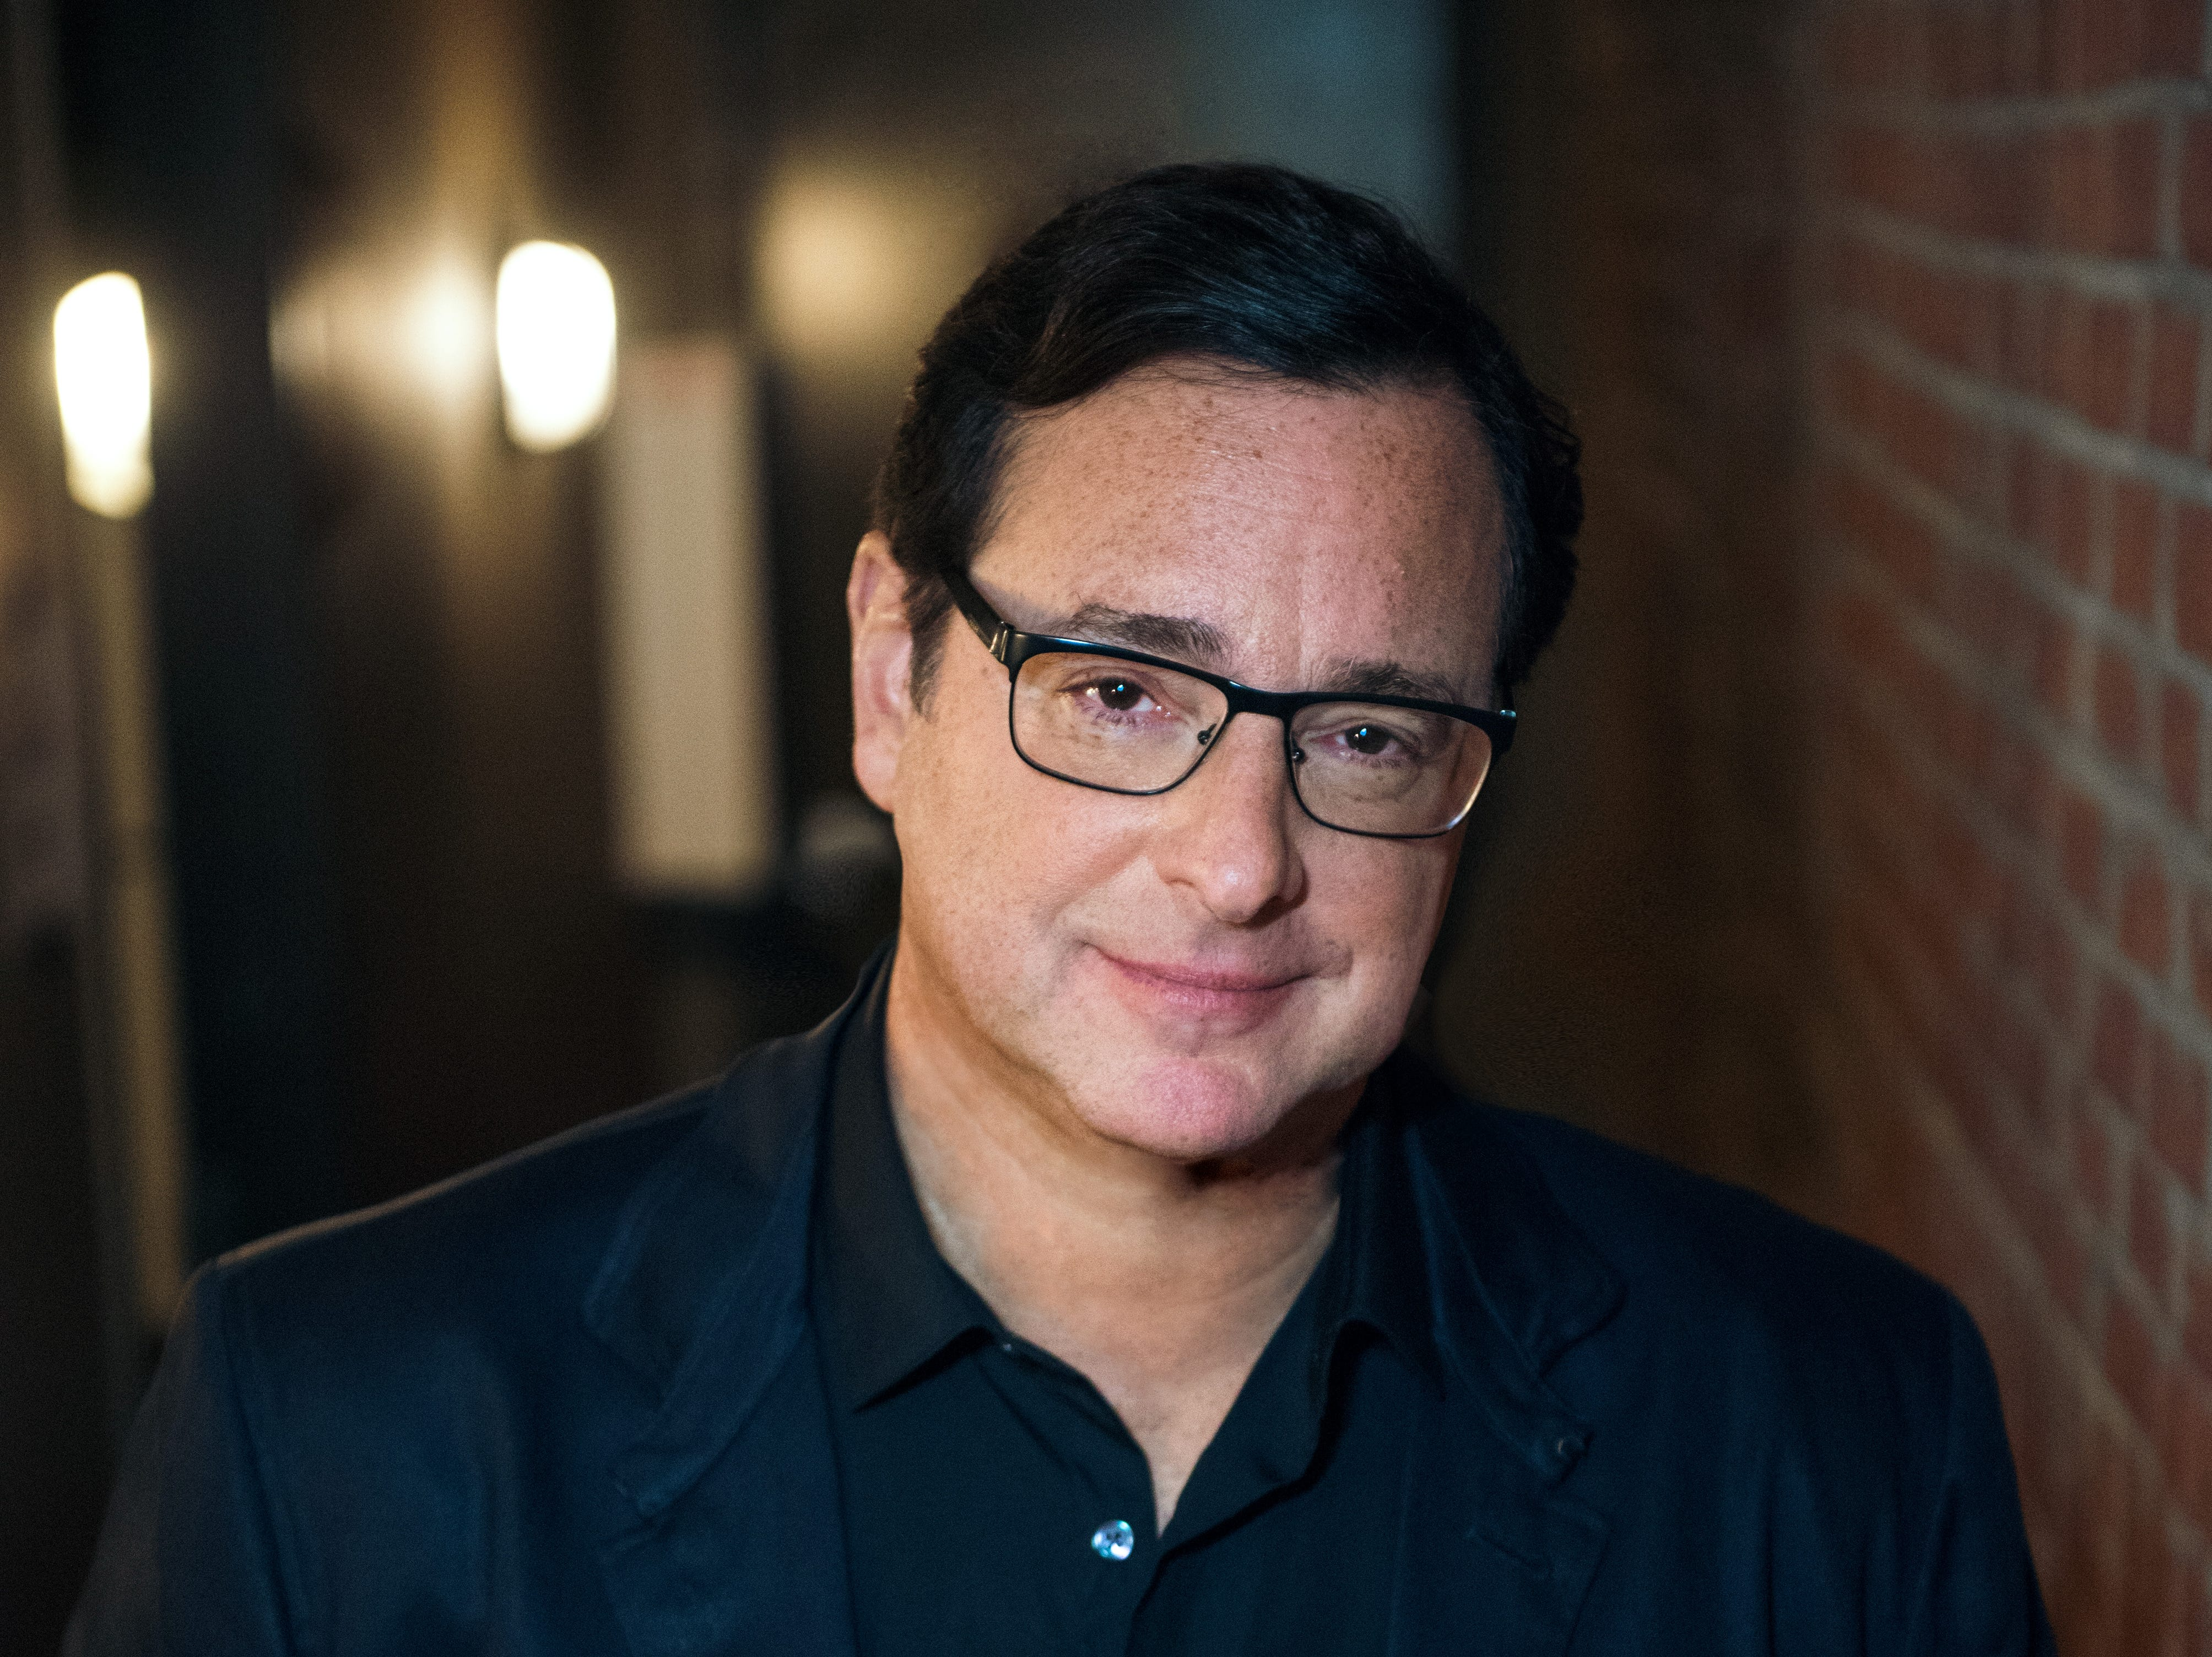 Bob Saget's stand-up show aims to make people laugh and sing